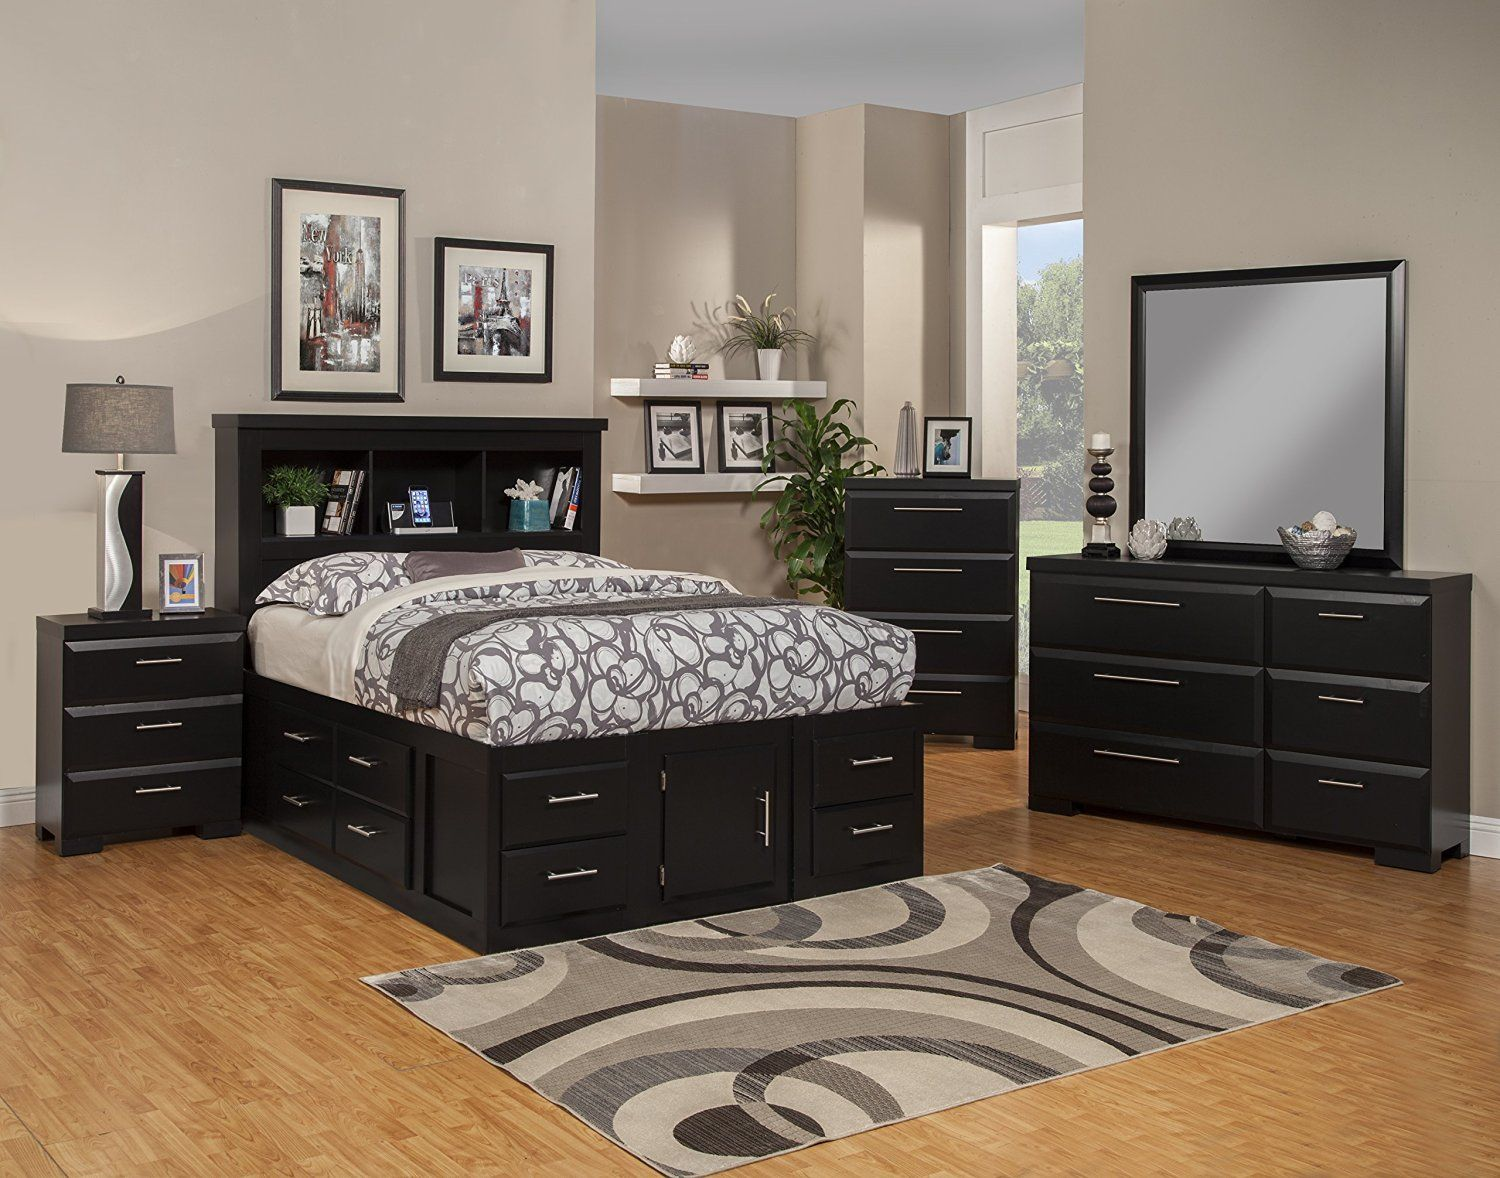 Sandberg Furniture Serenity 12 Drawer Ultimate Storage Bed Queen